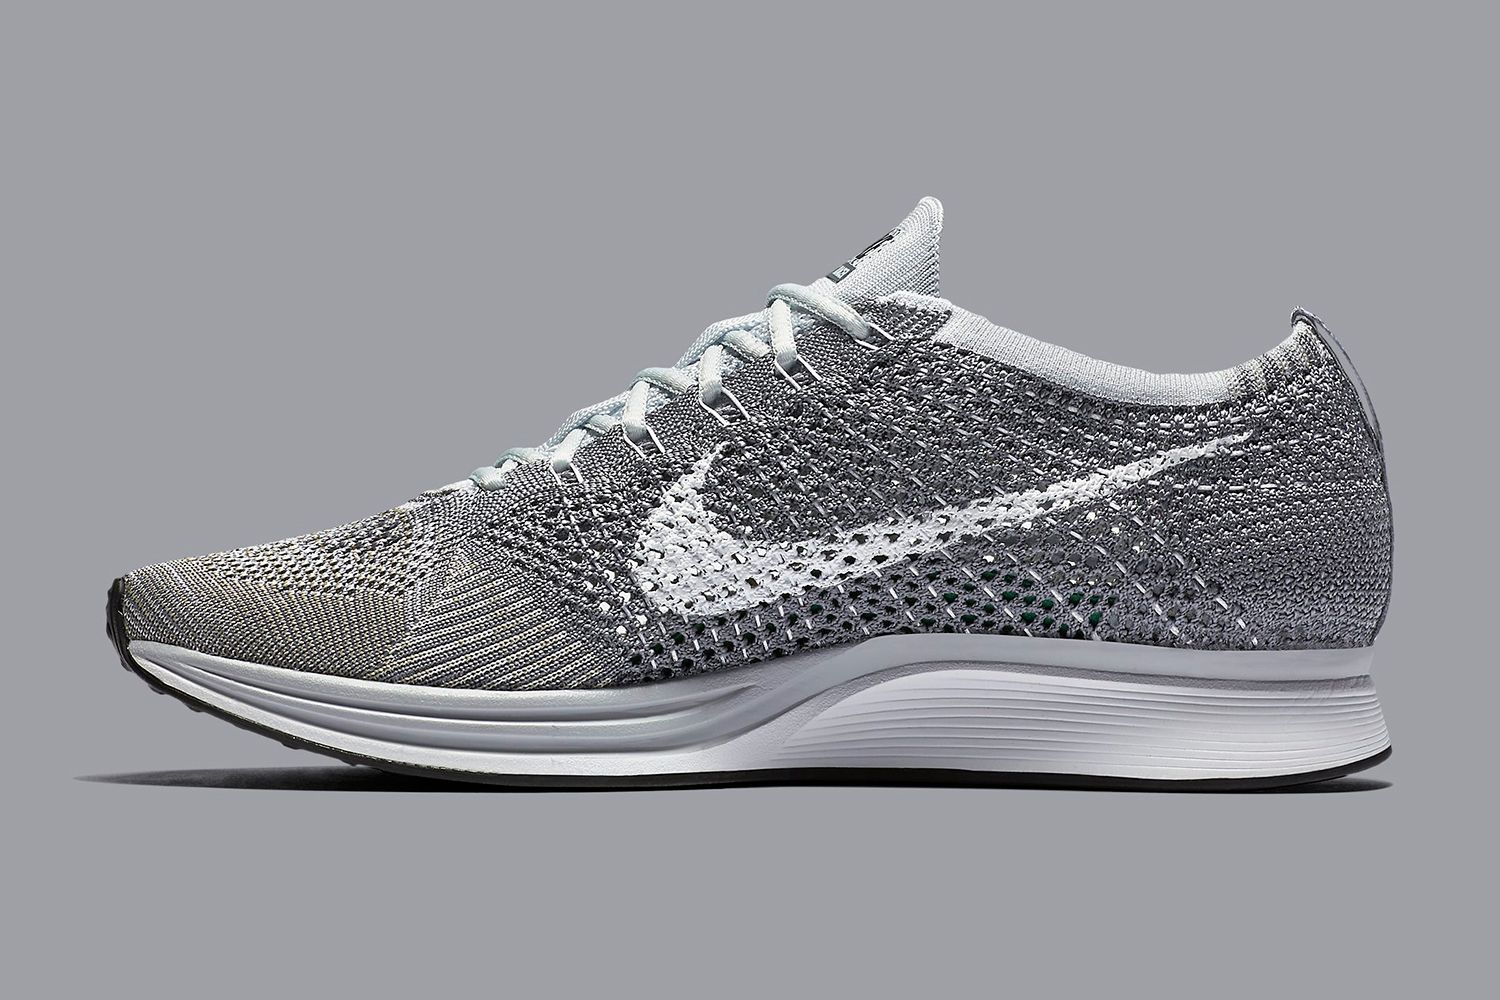 d63c2dadcb773 Nike Flyknit Racer Arriving in a Smooth